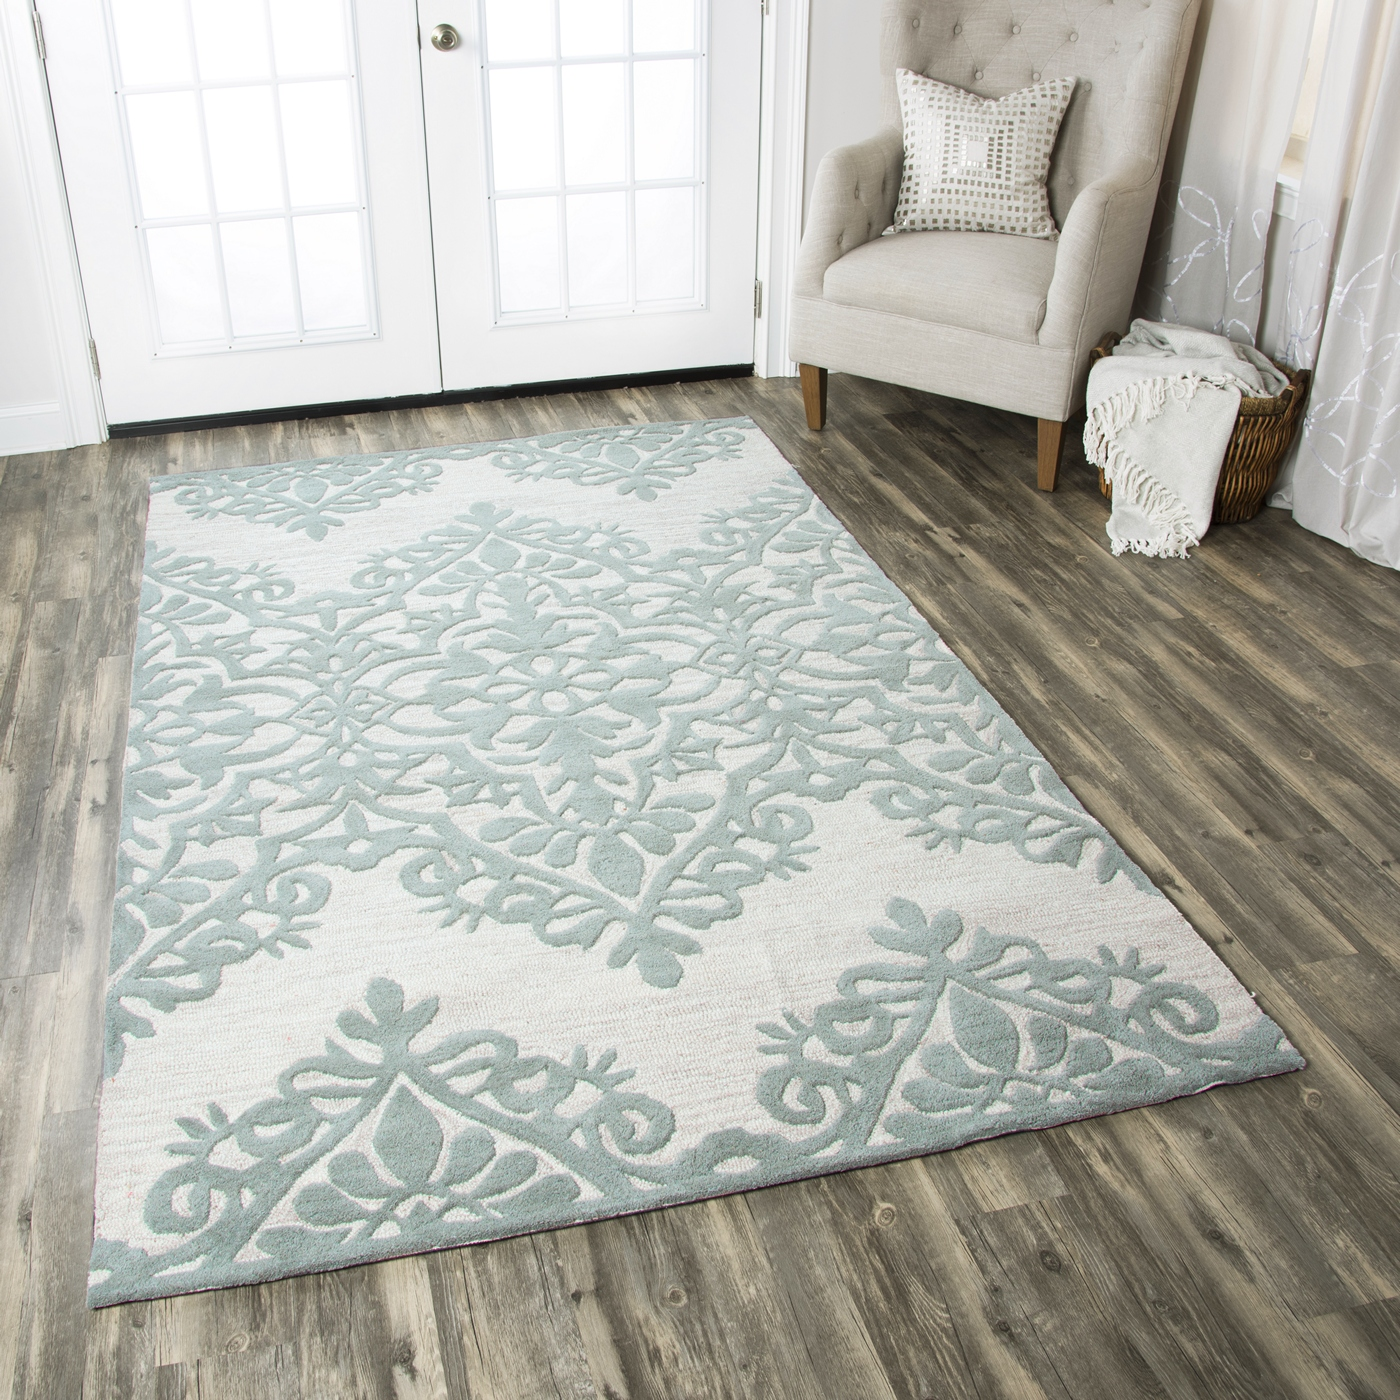 Floral Damask Area Rug: Luniccia Intricate Floral Damask Wool Area Rug In Green